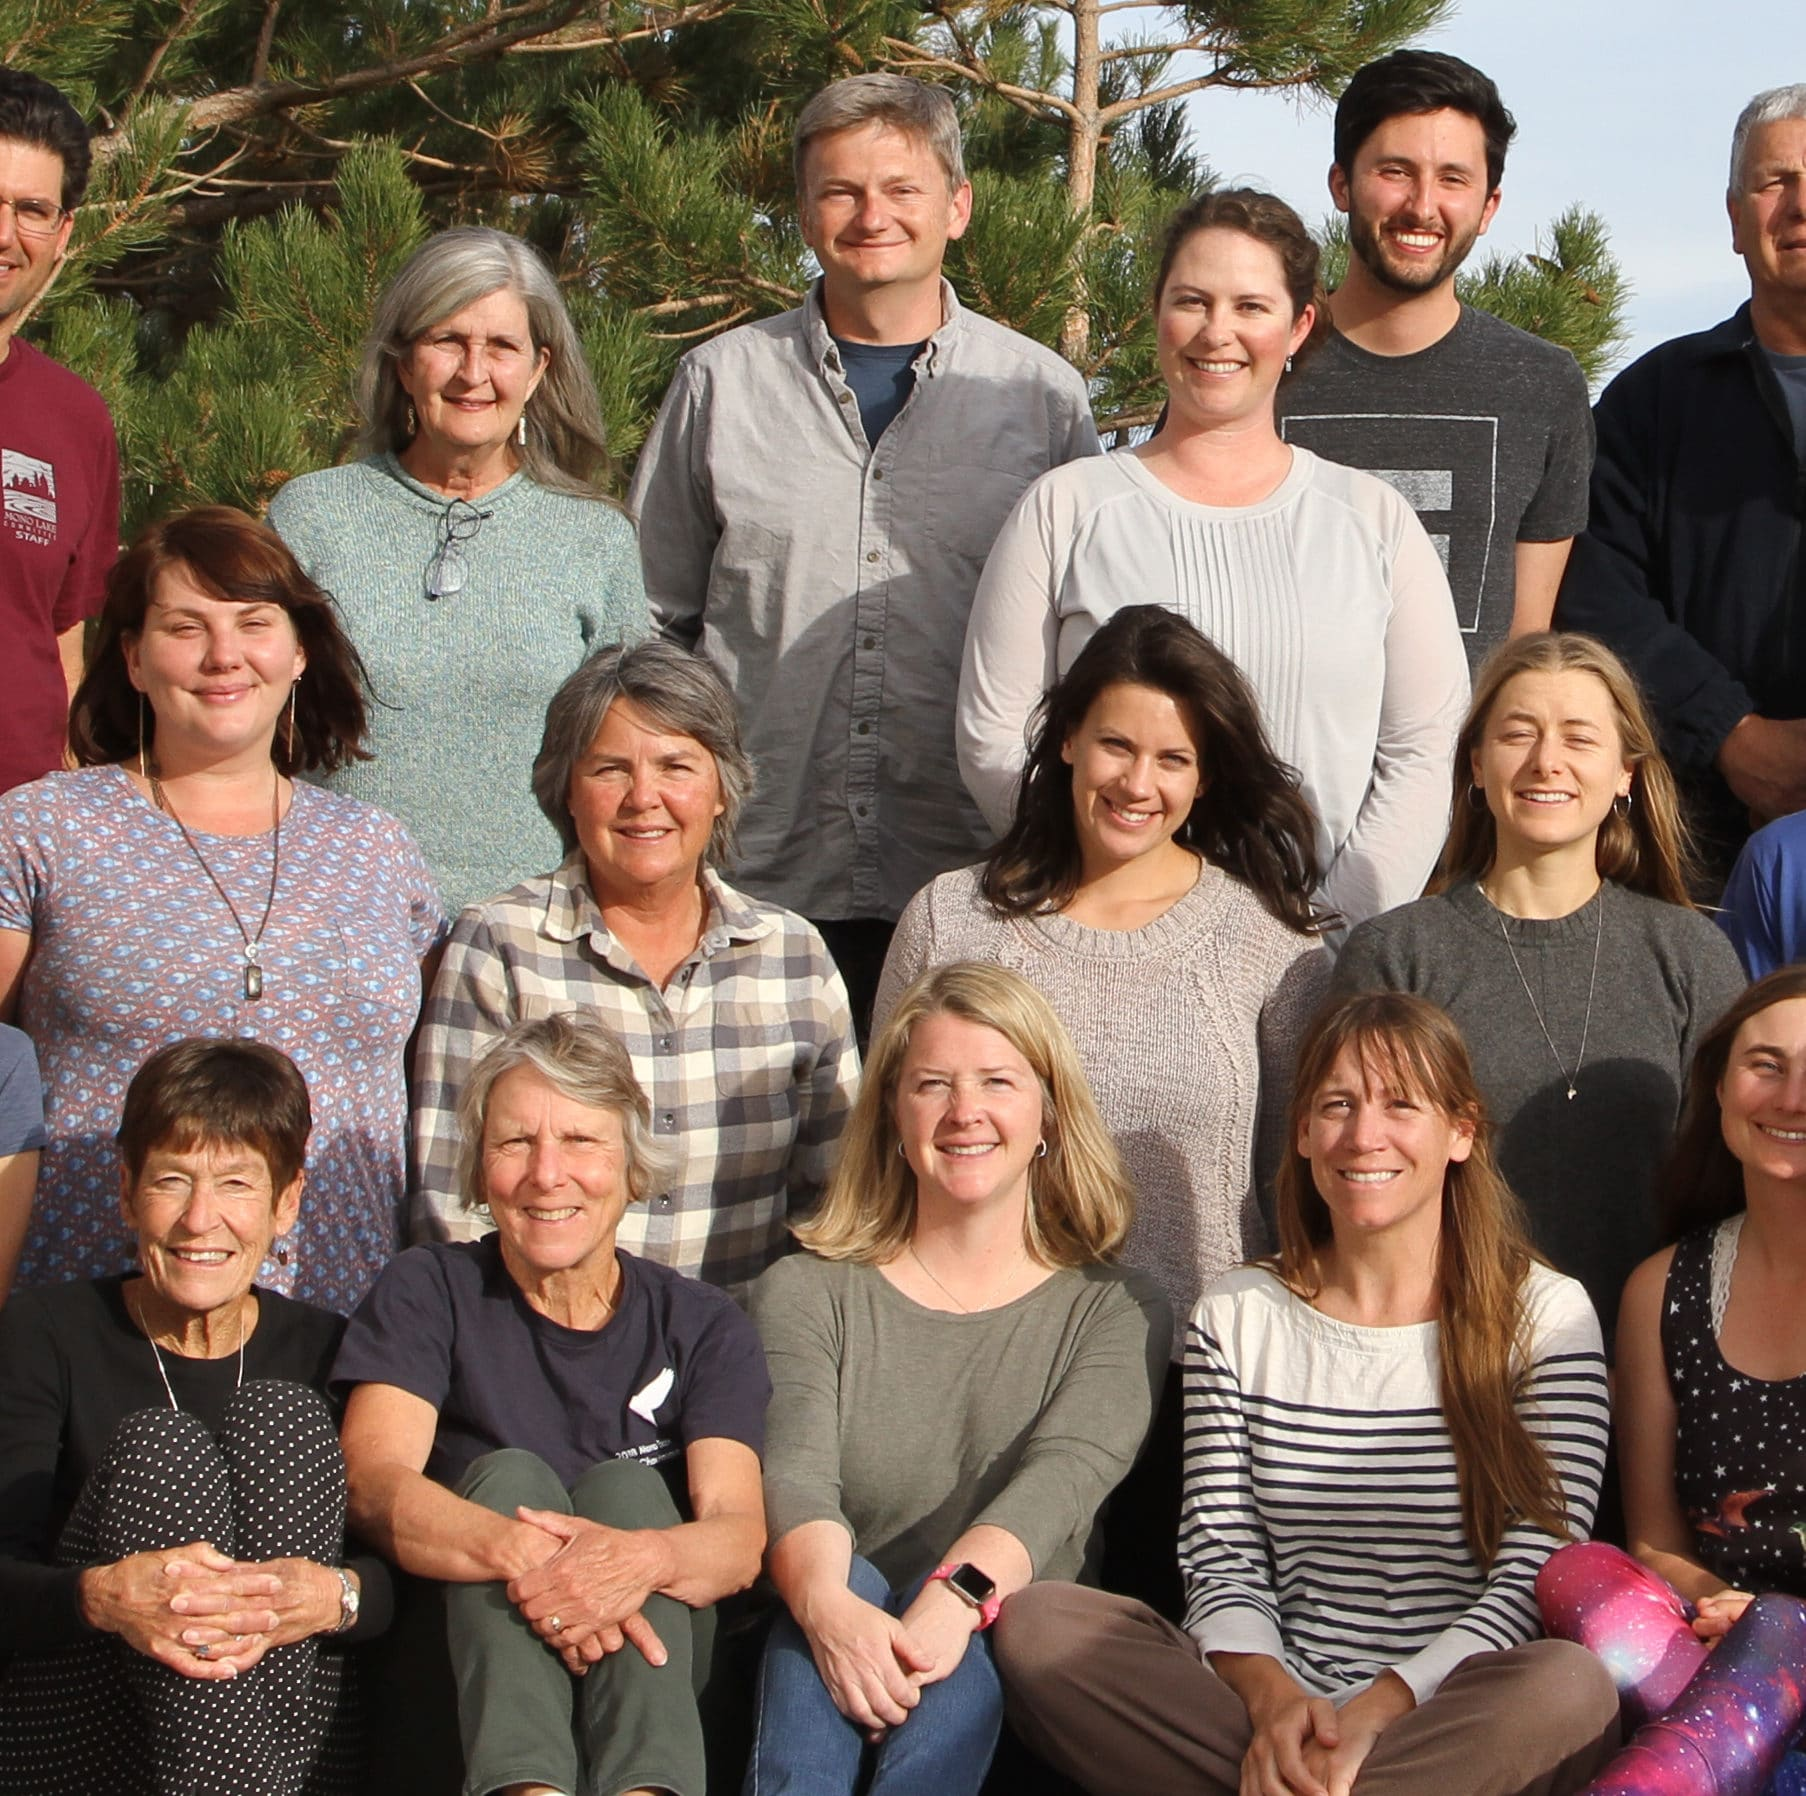 The Mono Lake Committee staff poses for a group photo ouside and are smiling and looking happy and proud.